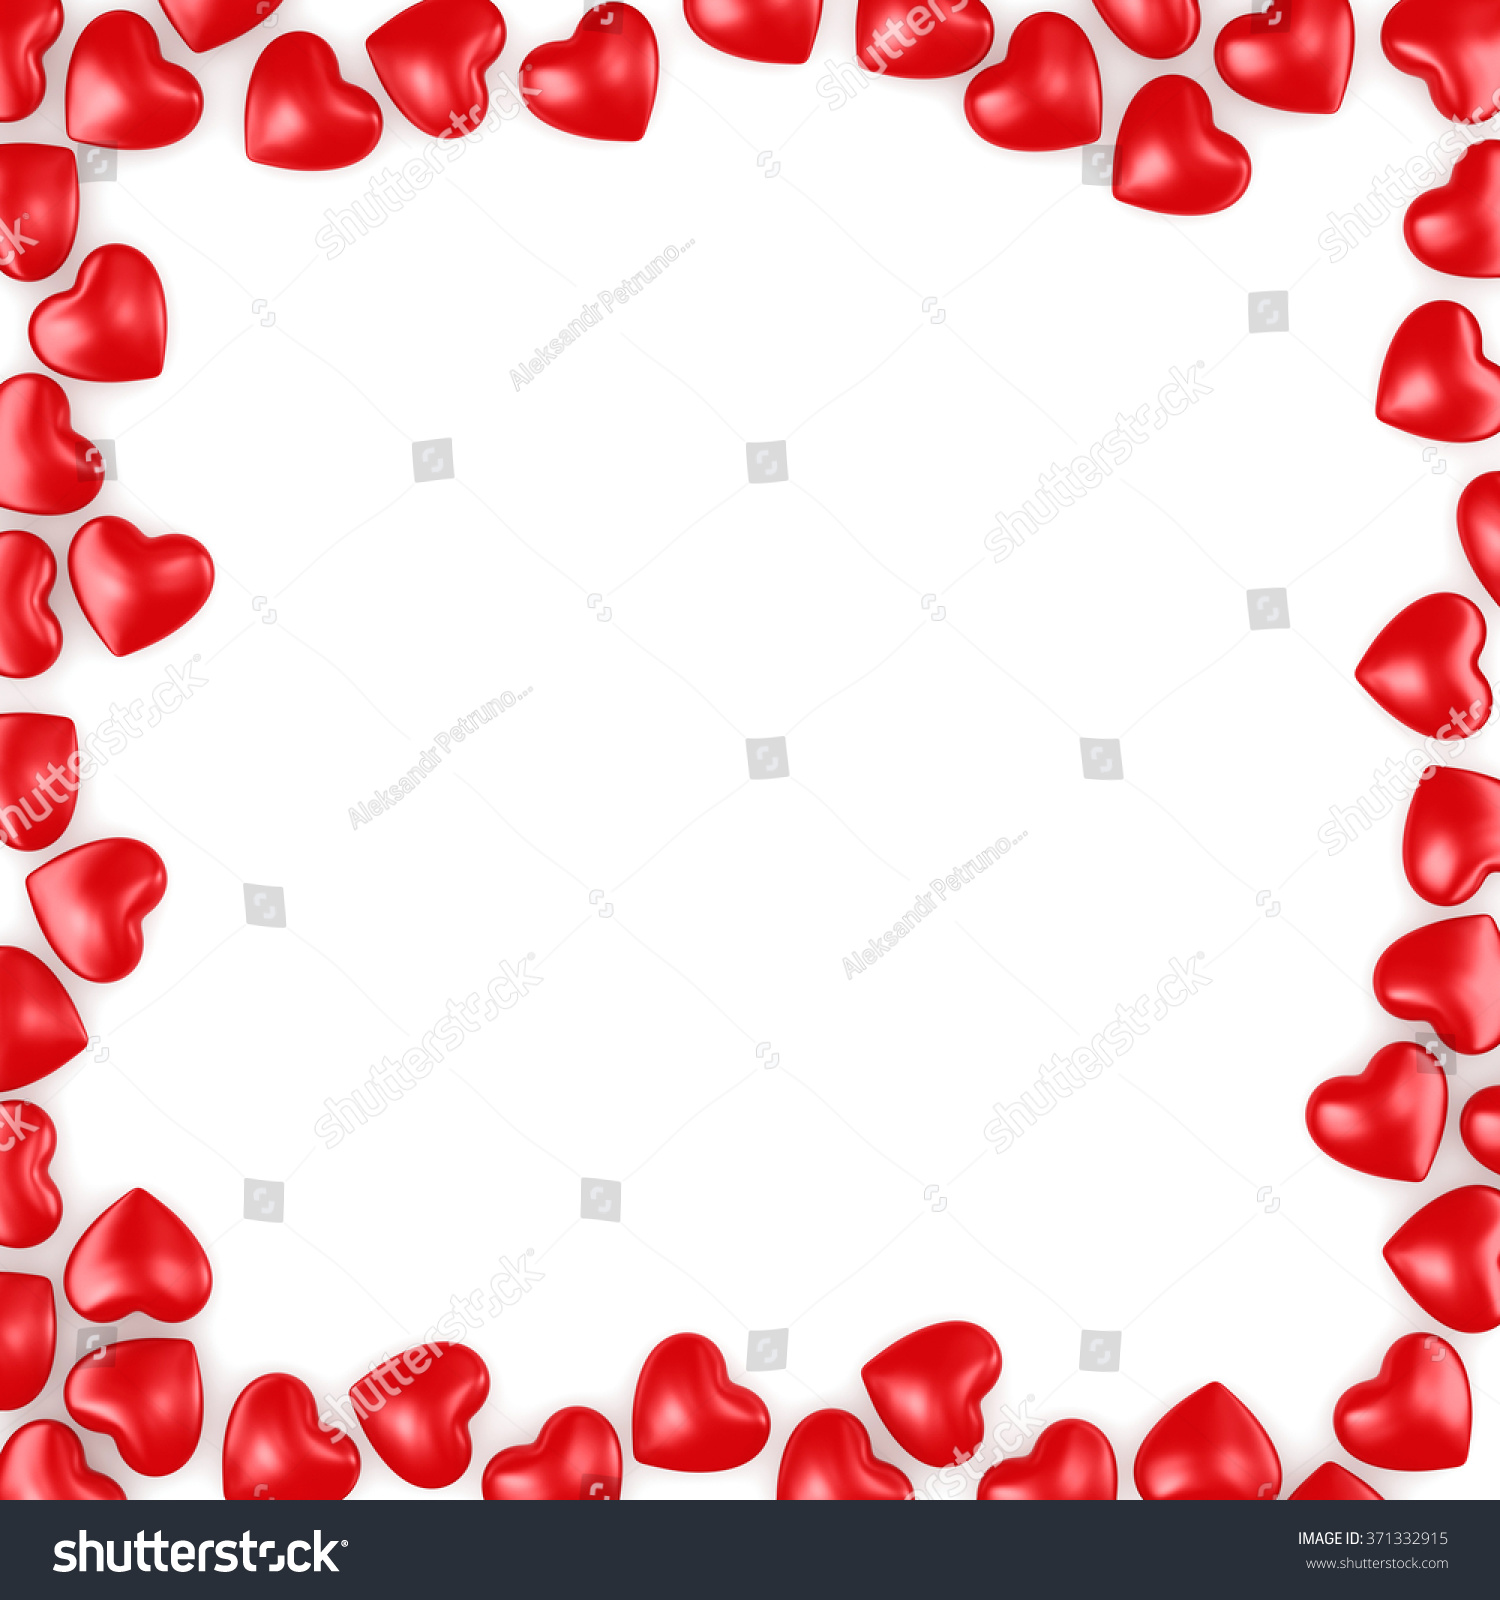 Frame Red Hearts Valentines Day Stock Illustration 371332915 ...